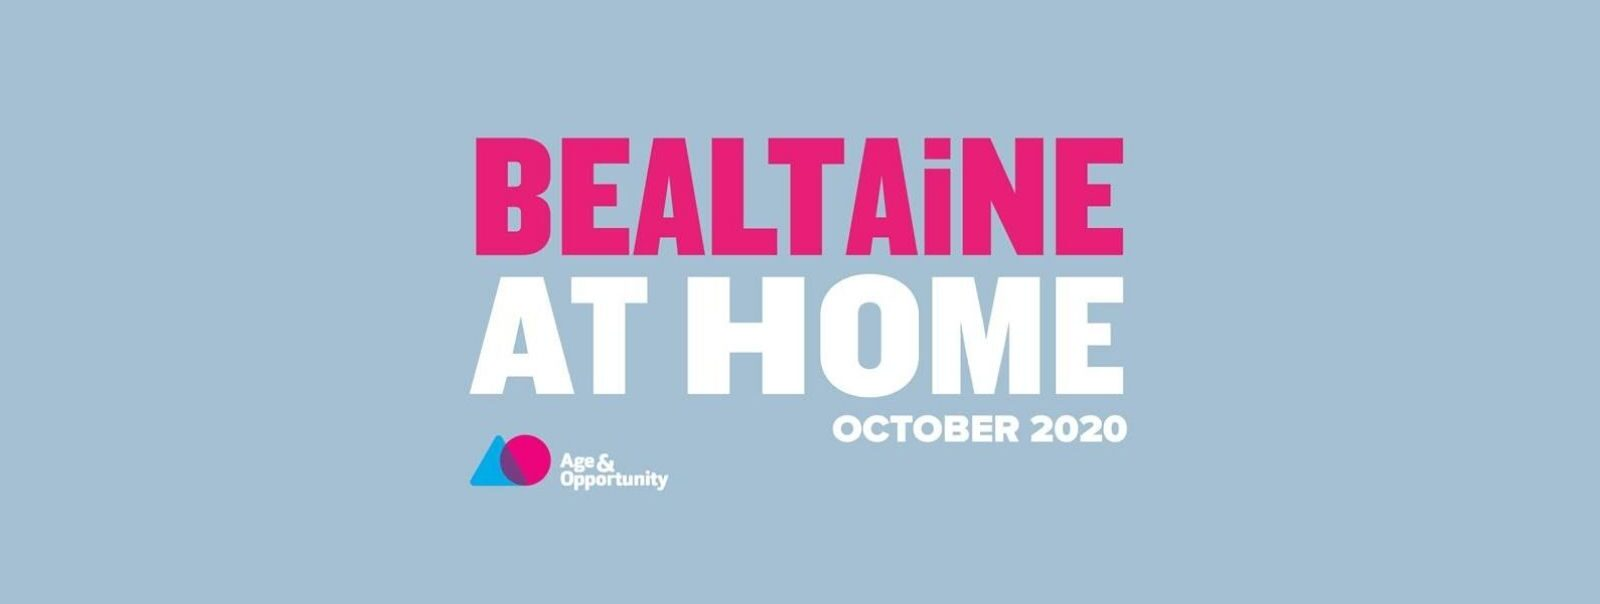 'Bealatine' in pink and 'At Home - October 2020' in white text on a light blue background with Age & Opportunity's logo in the bottom right corner.